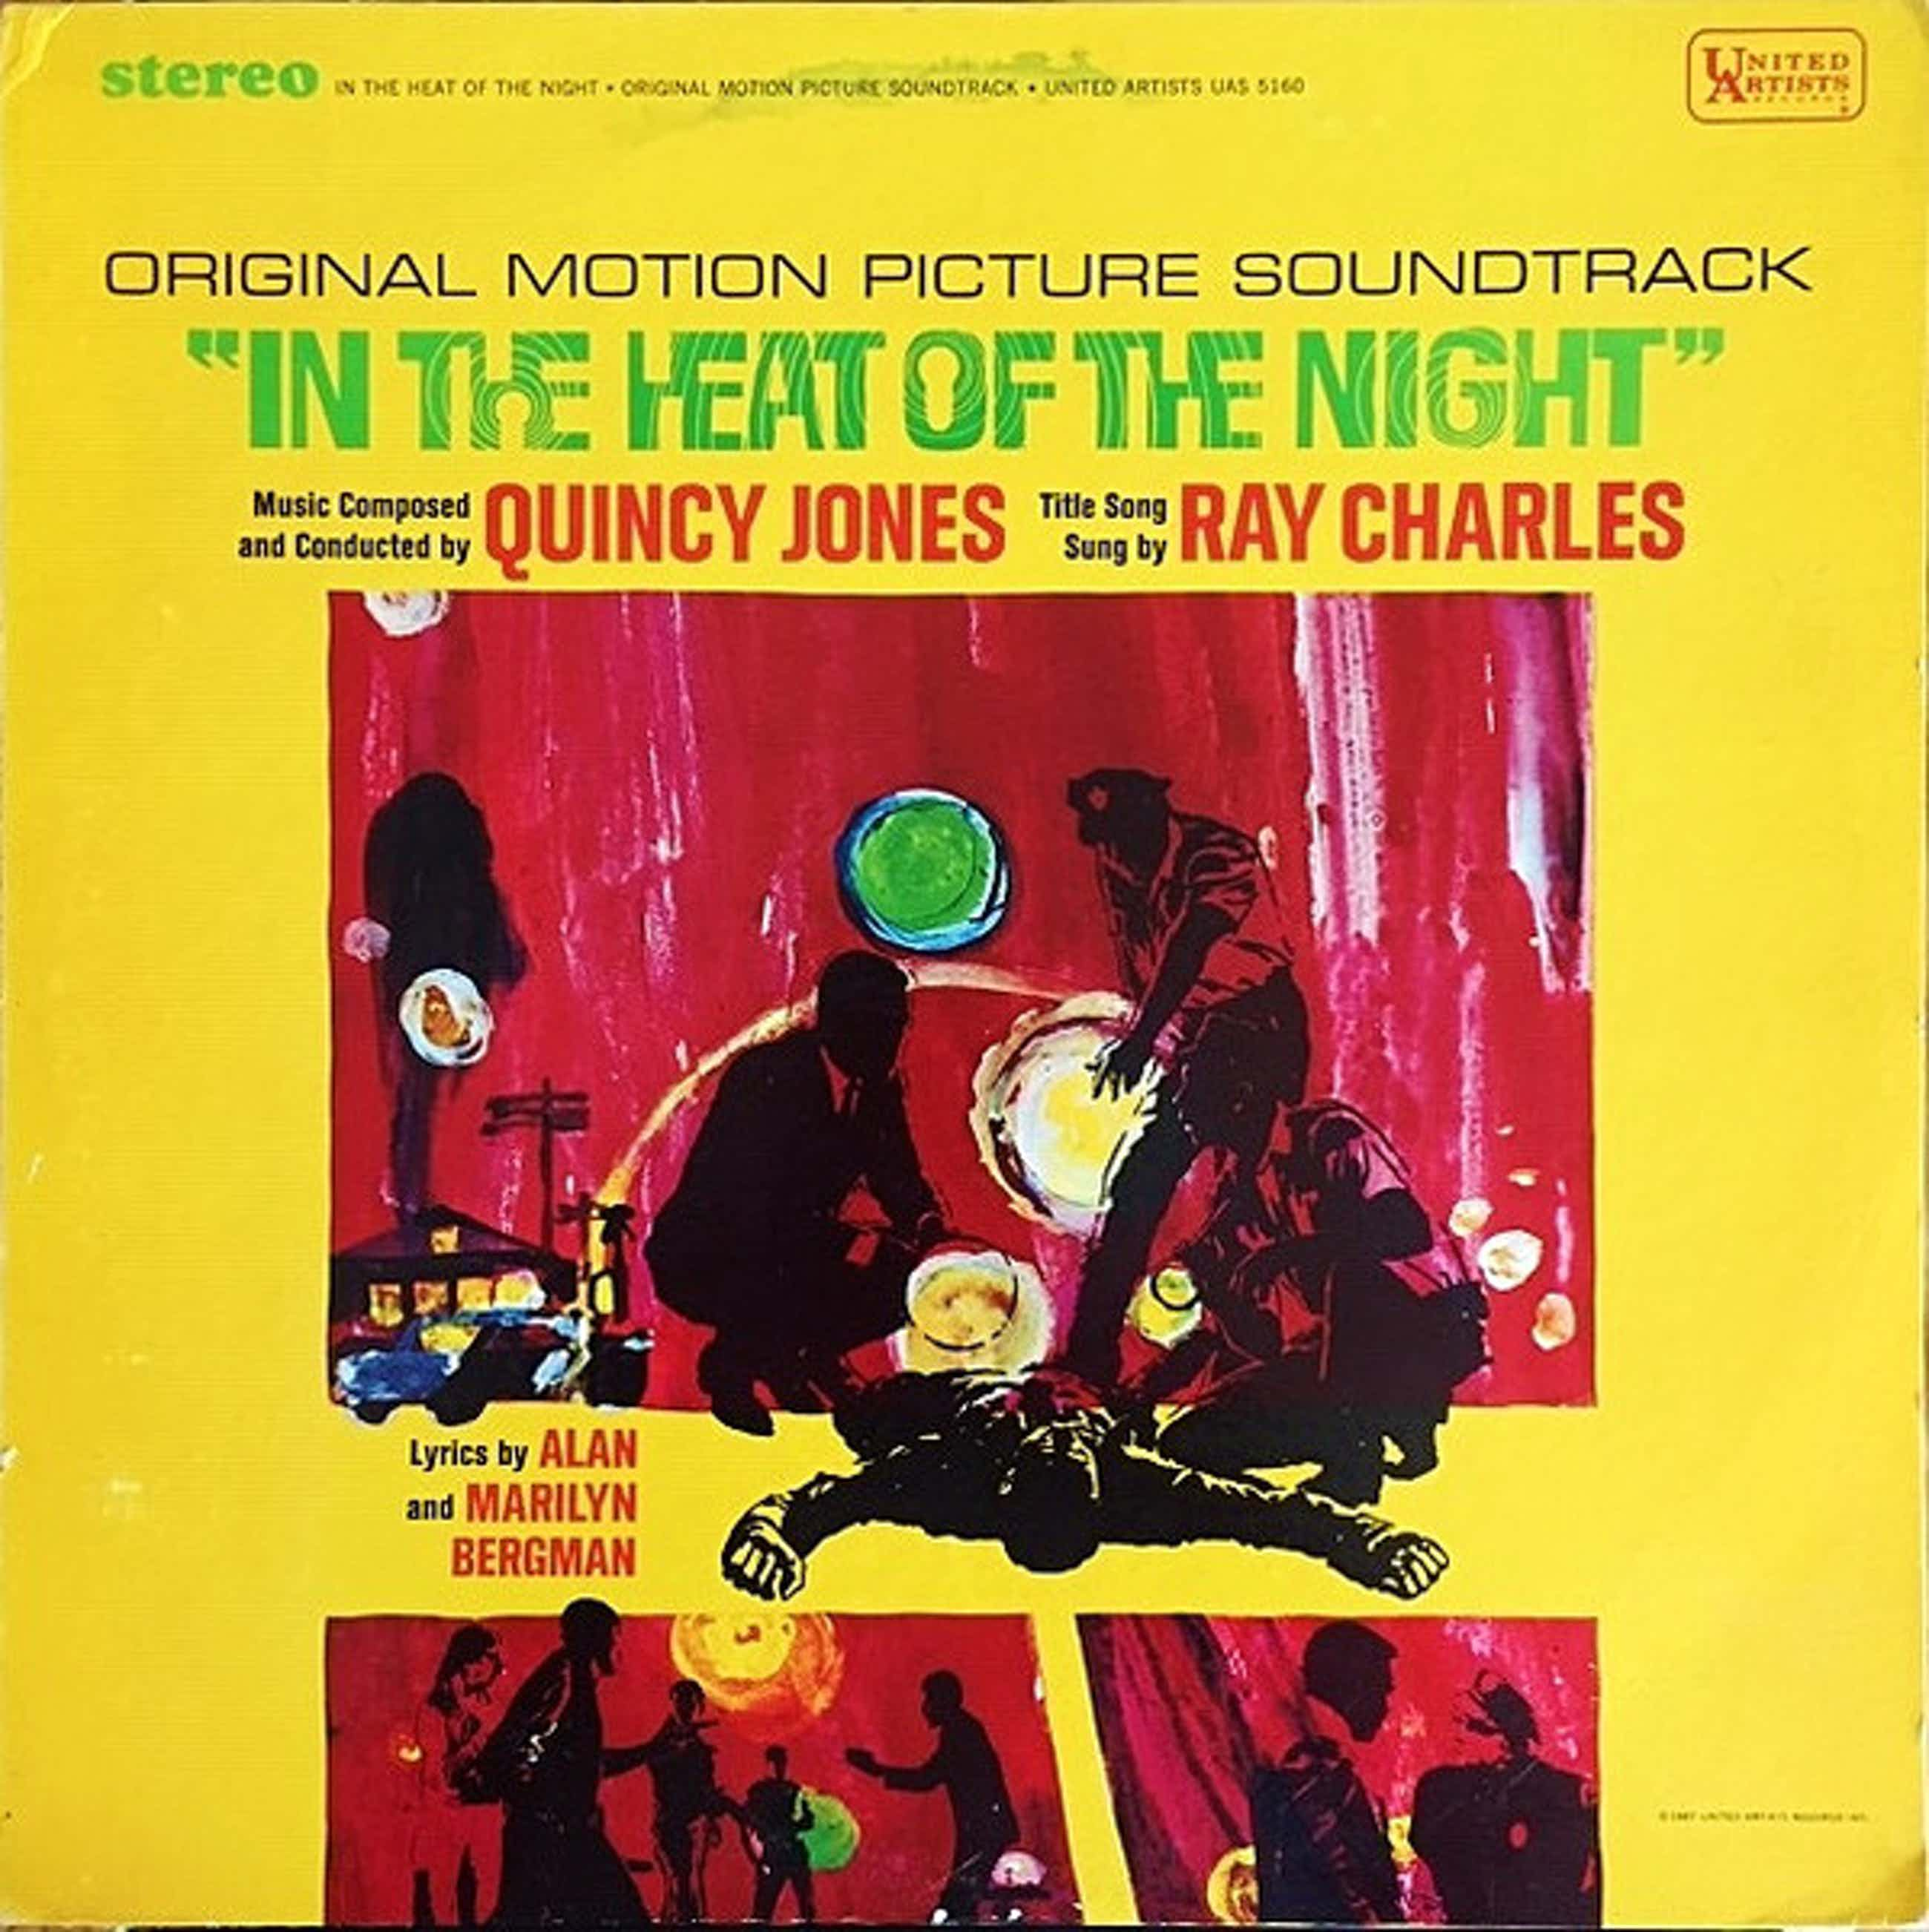 Ray Charles - In the heat of the night kopen? Bied vanaf 10!